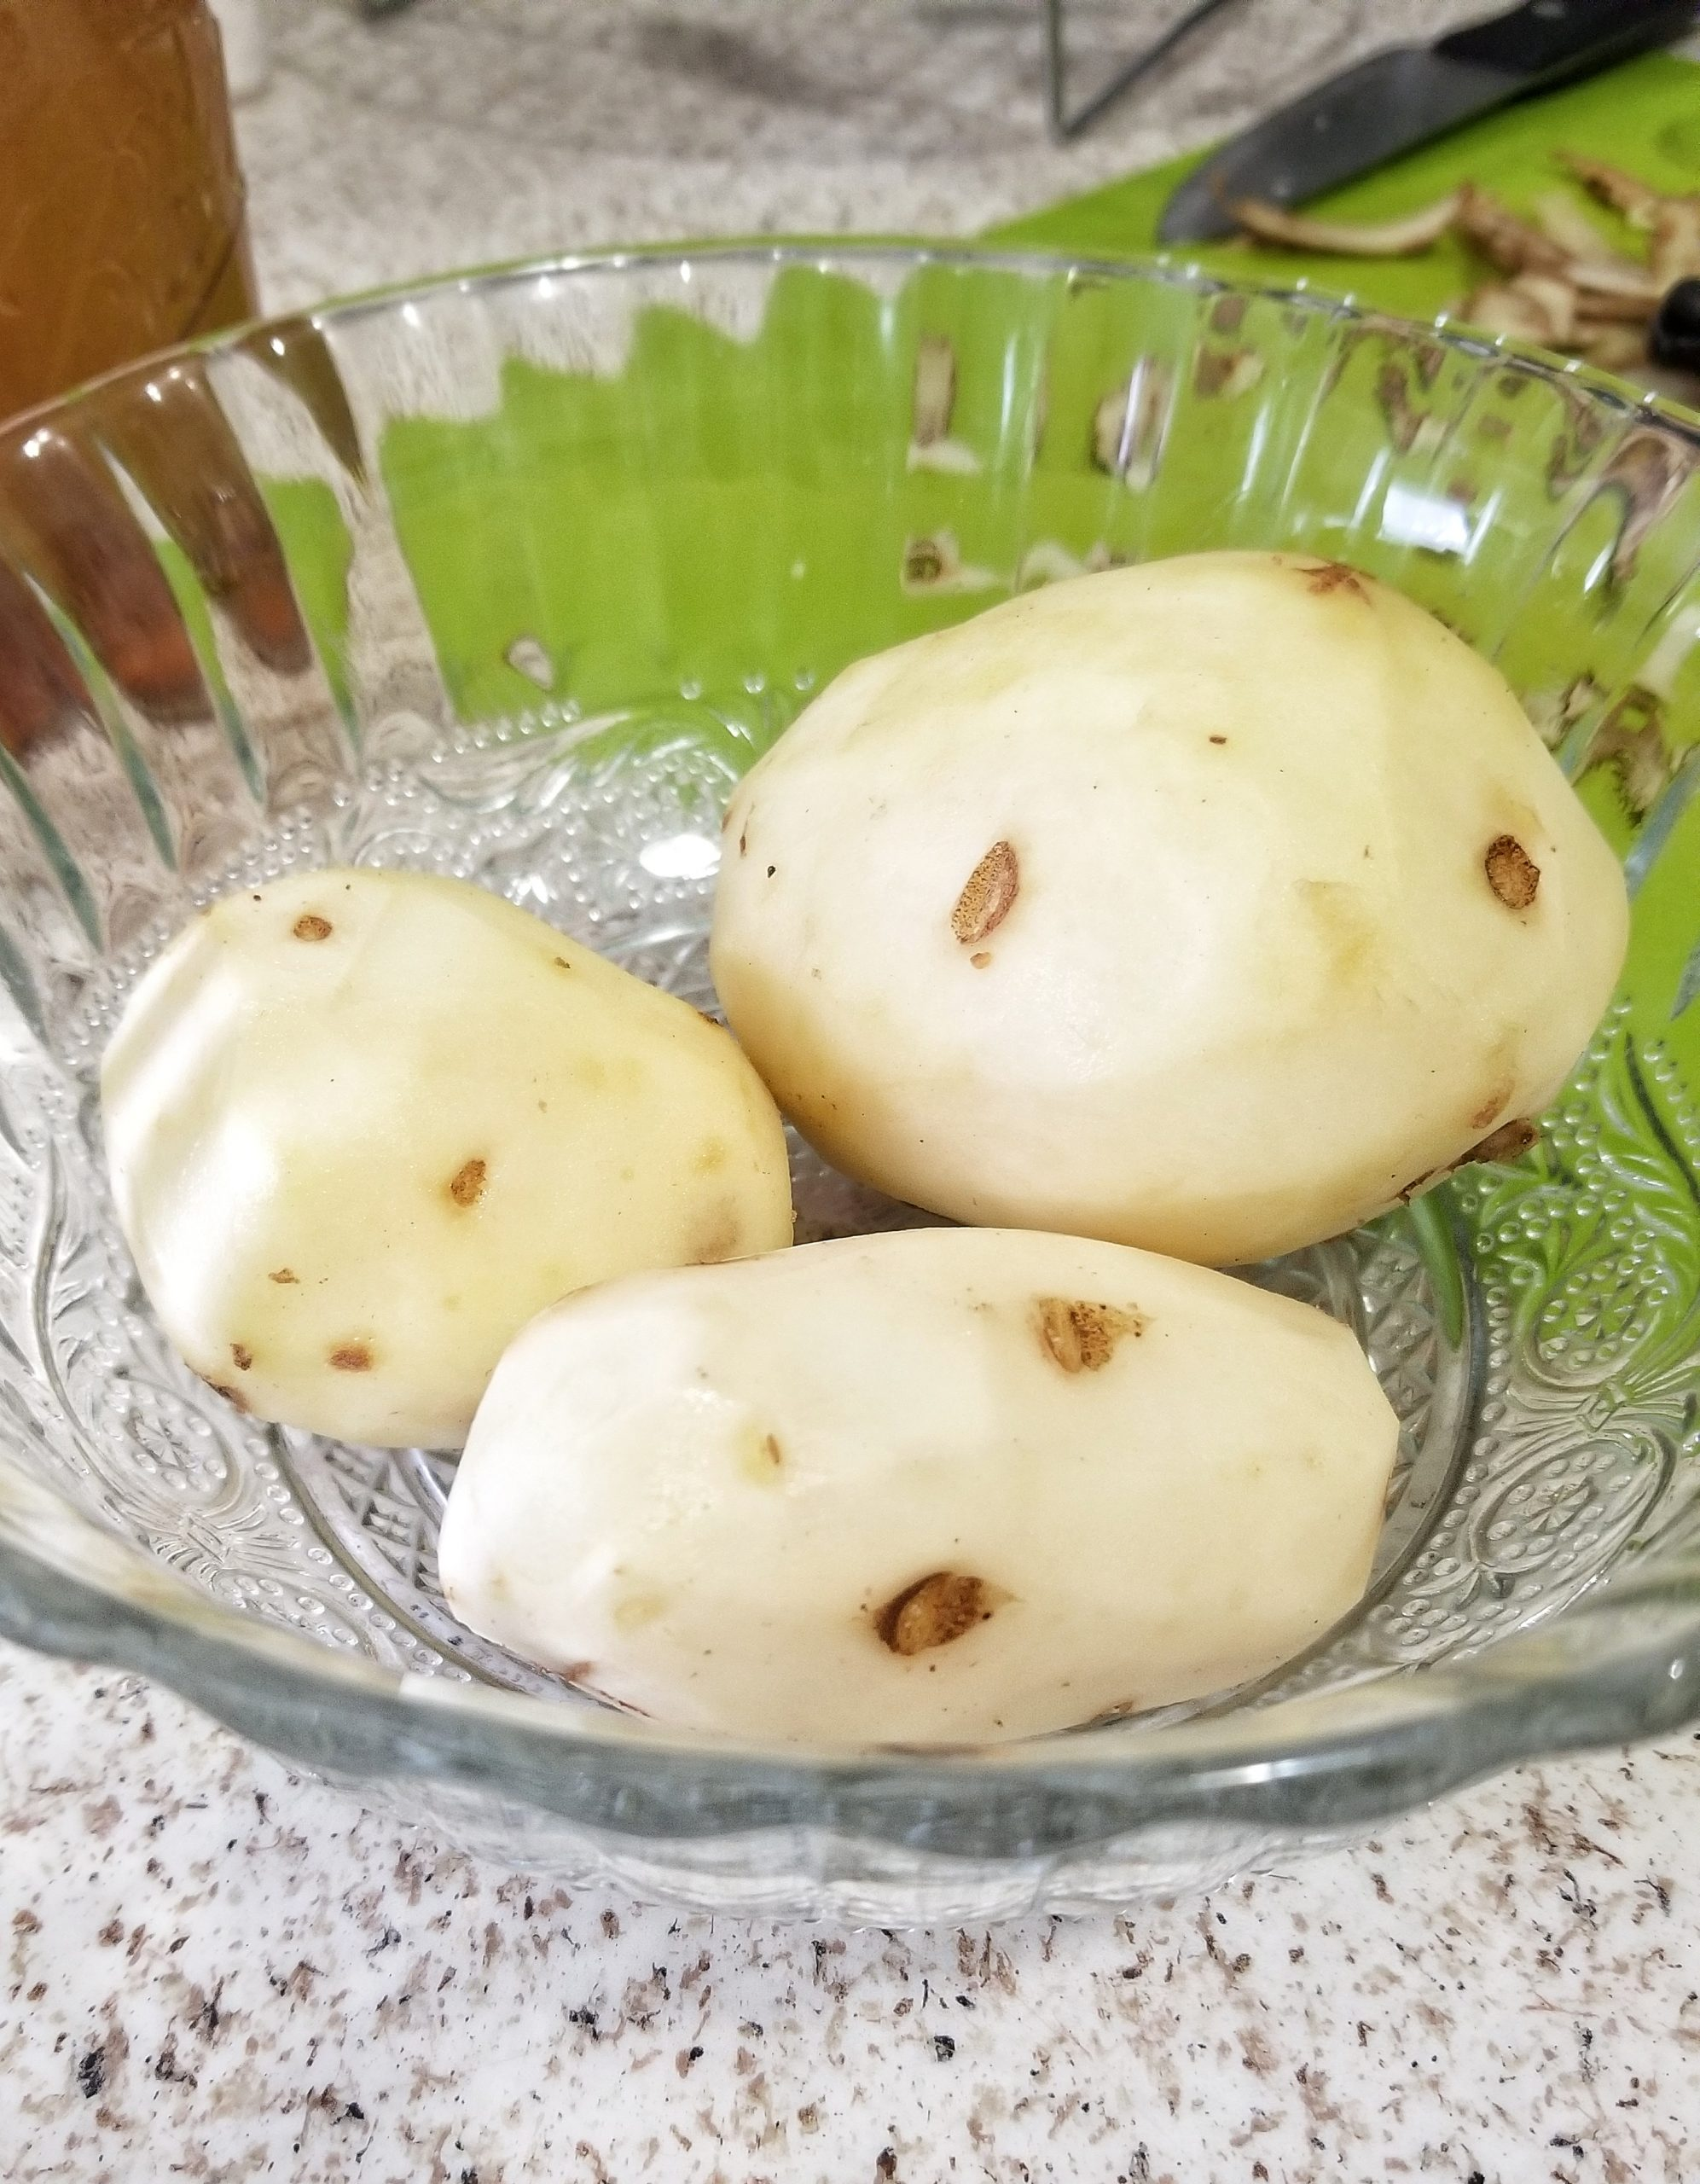 Three peeled russet potatoes in a bowl